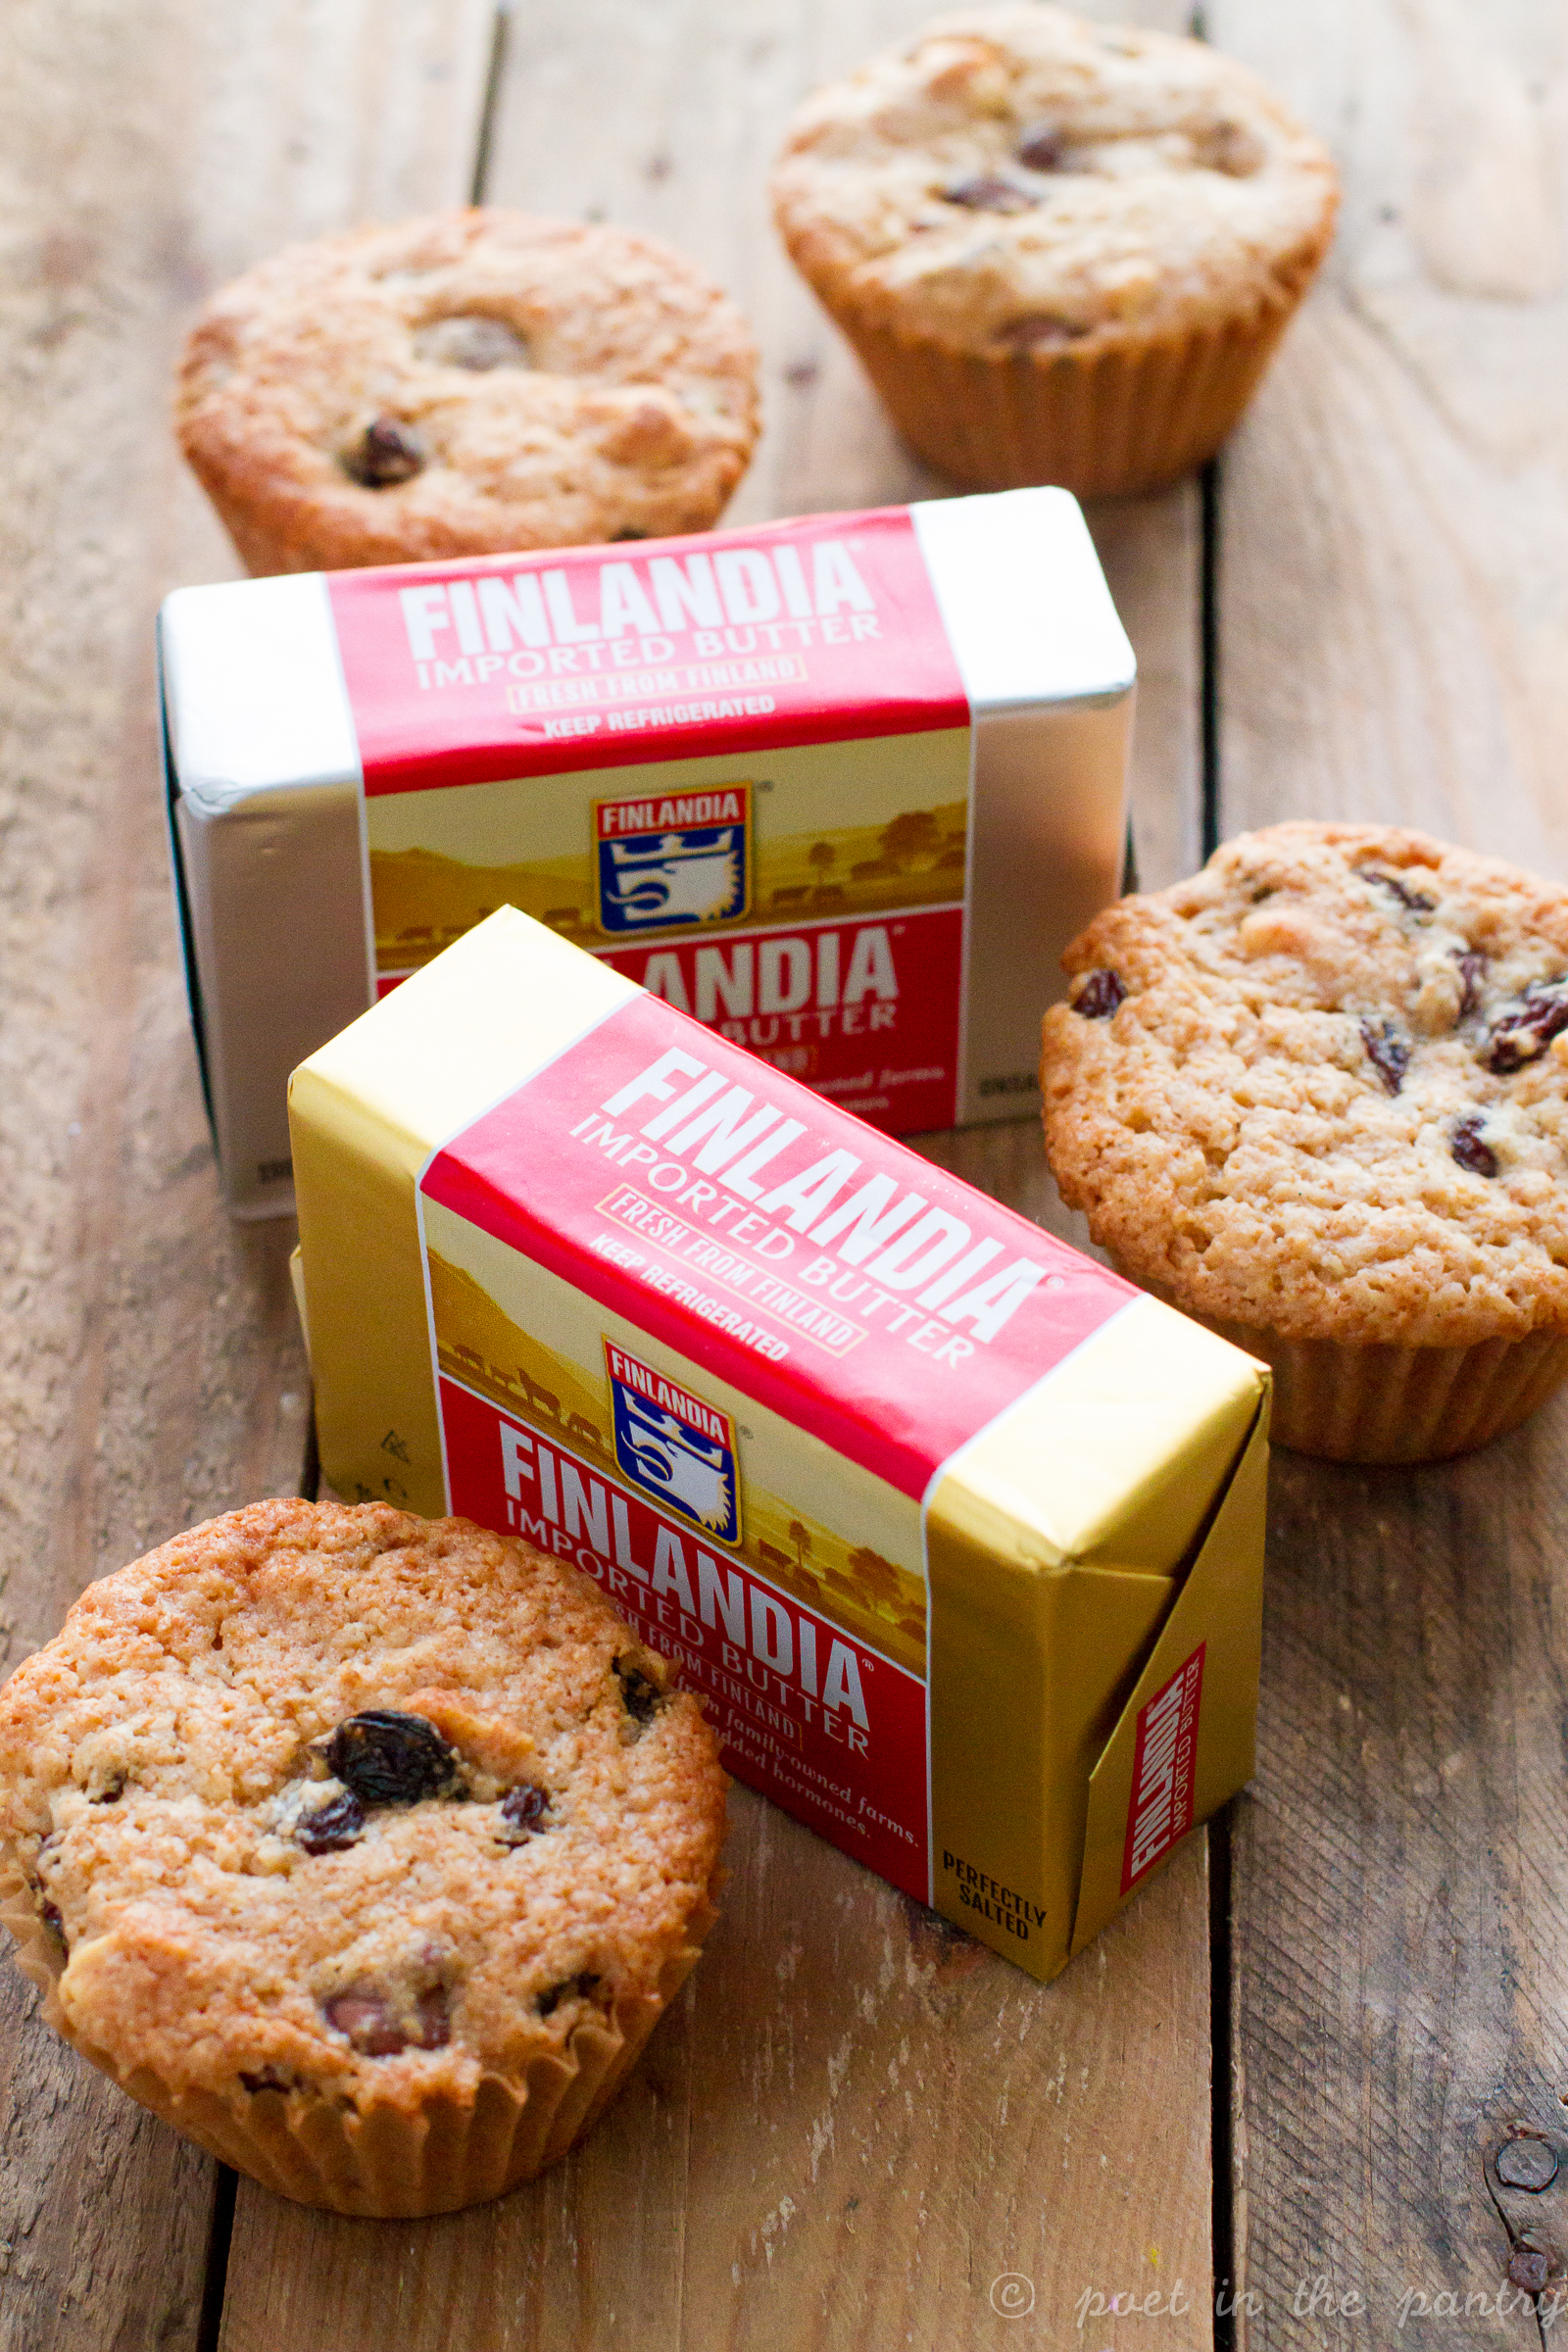 Finlandia Imported Butter is a premium butter made from humanely-treated cows raised on small Finnish family farms. Its rich and creamy taste is highly addictive! Try this new gourmet butter on your favorite baked goods, like these Candy Bar Muffins, and be wowed!